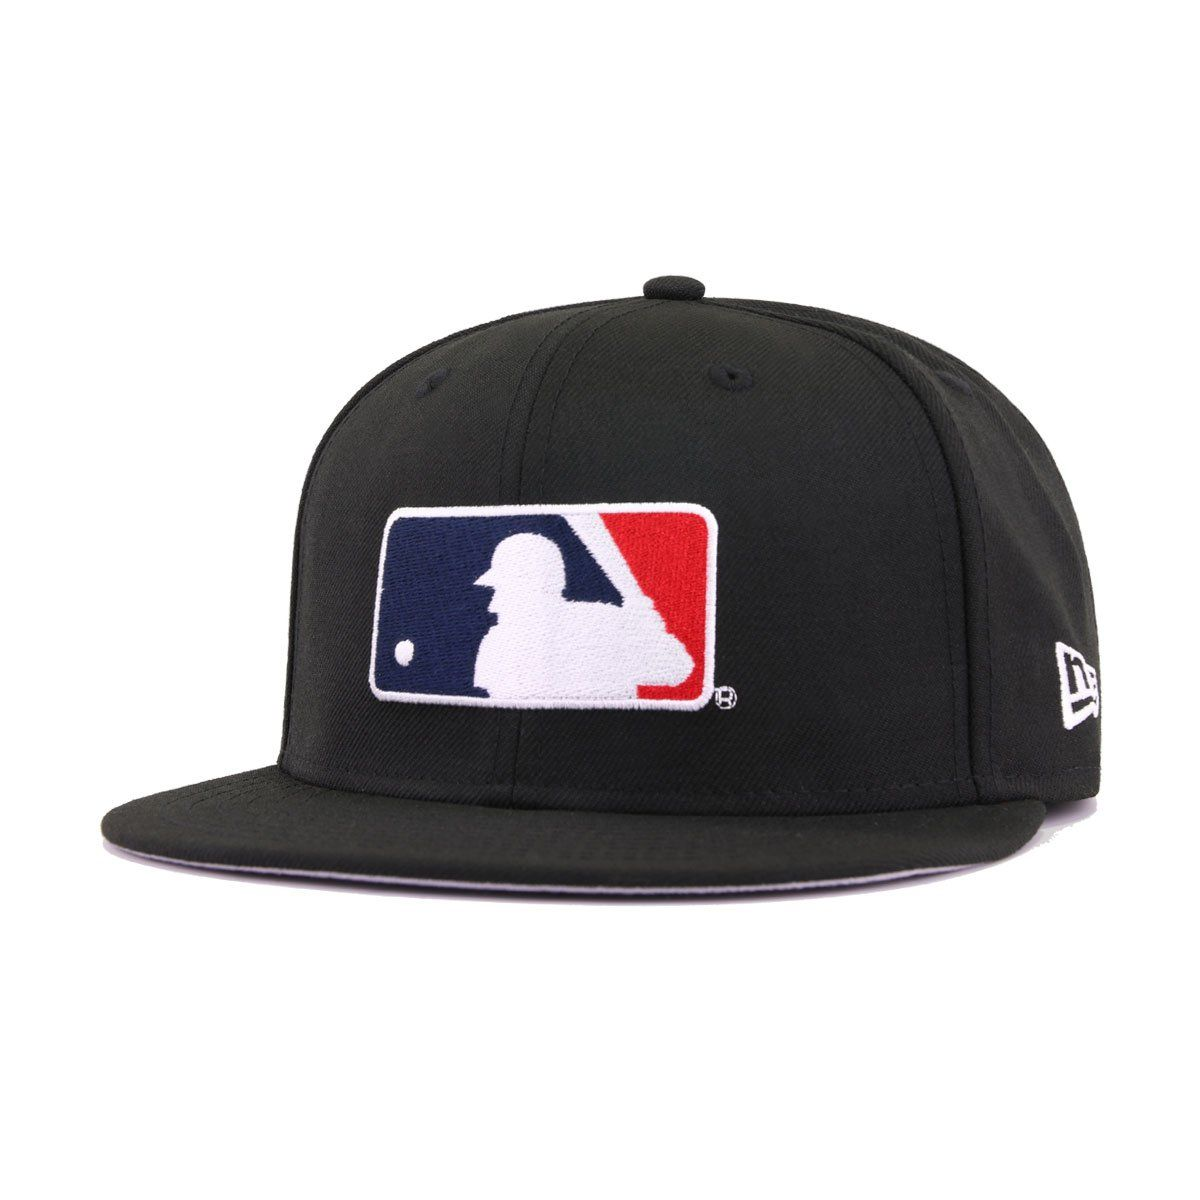 Mlb Umpire Black New Era 59fifty Fitted In 2020 New Era 59fifty New Era New Era Hats